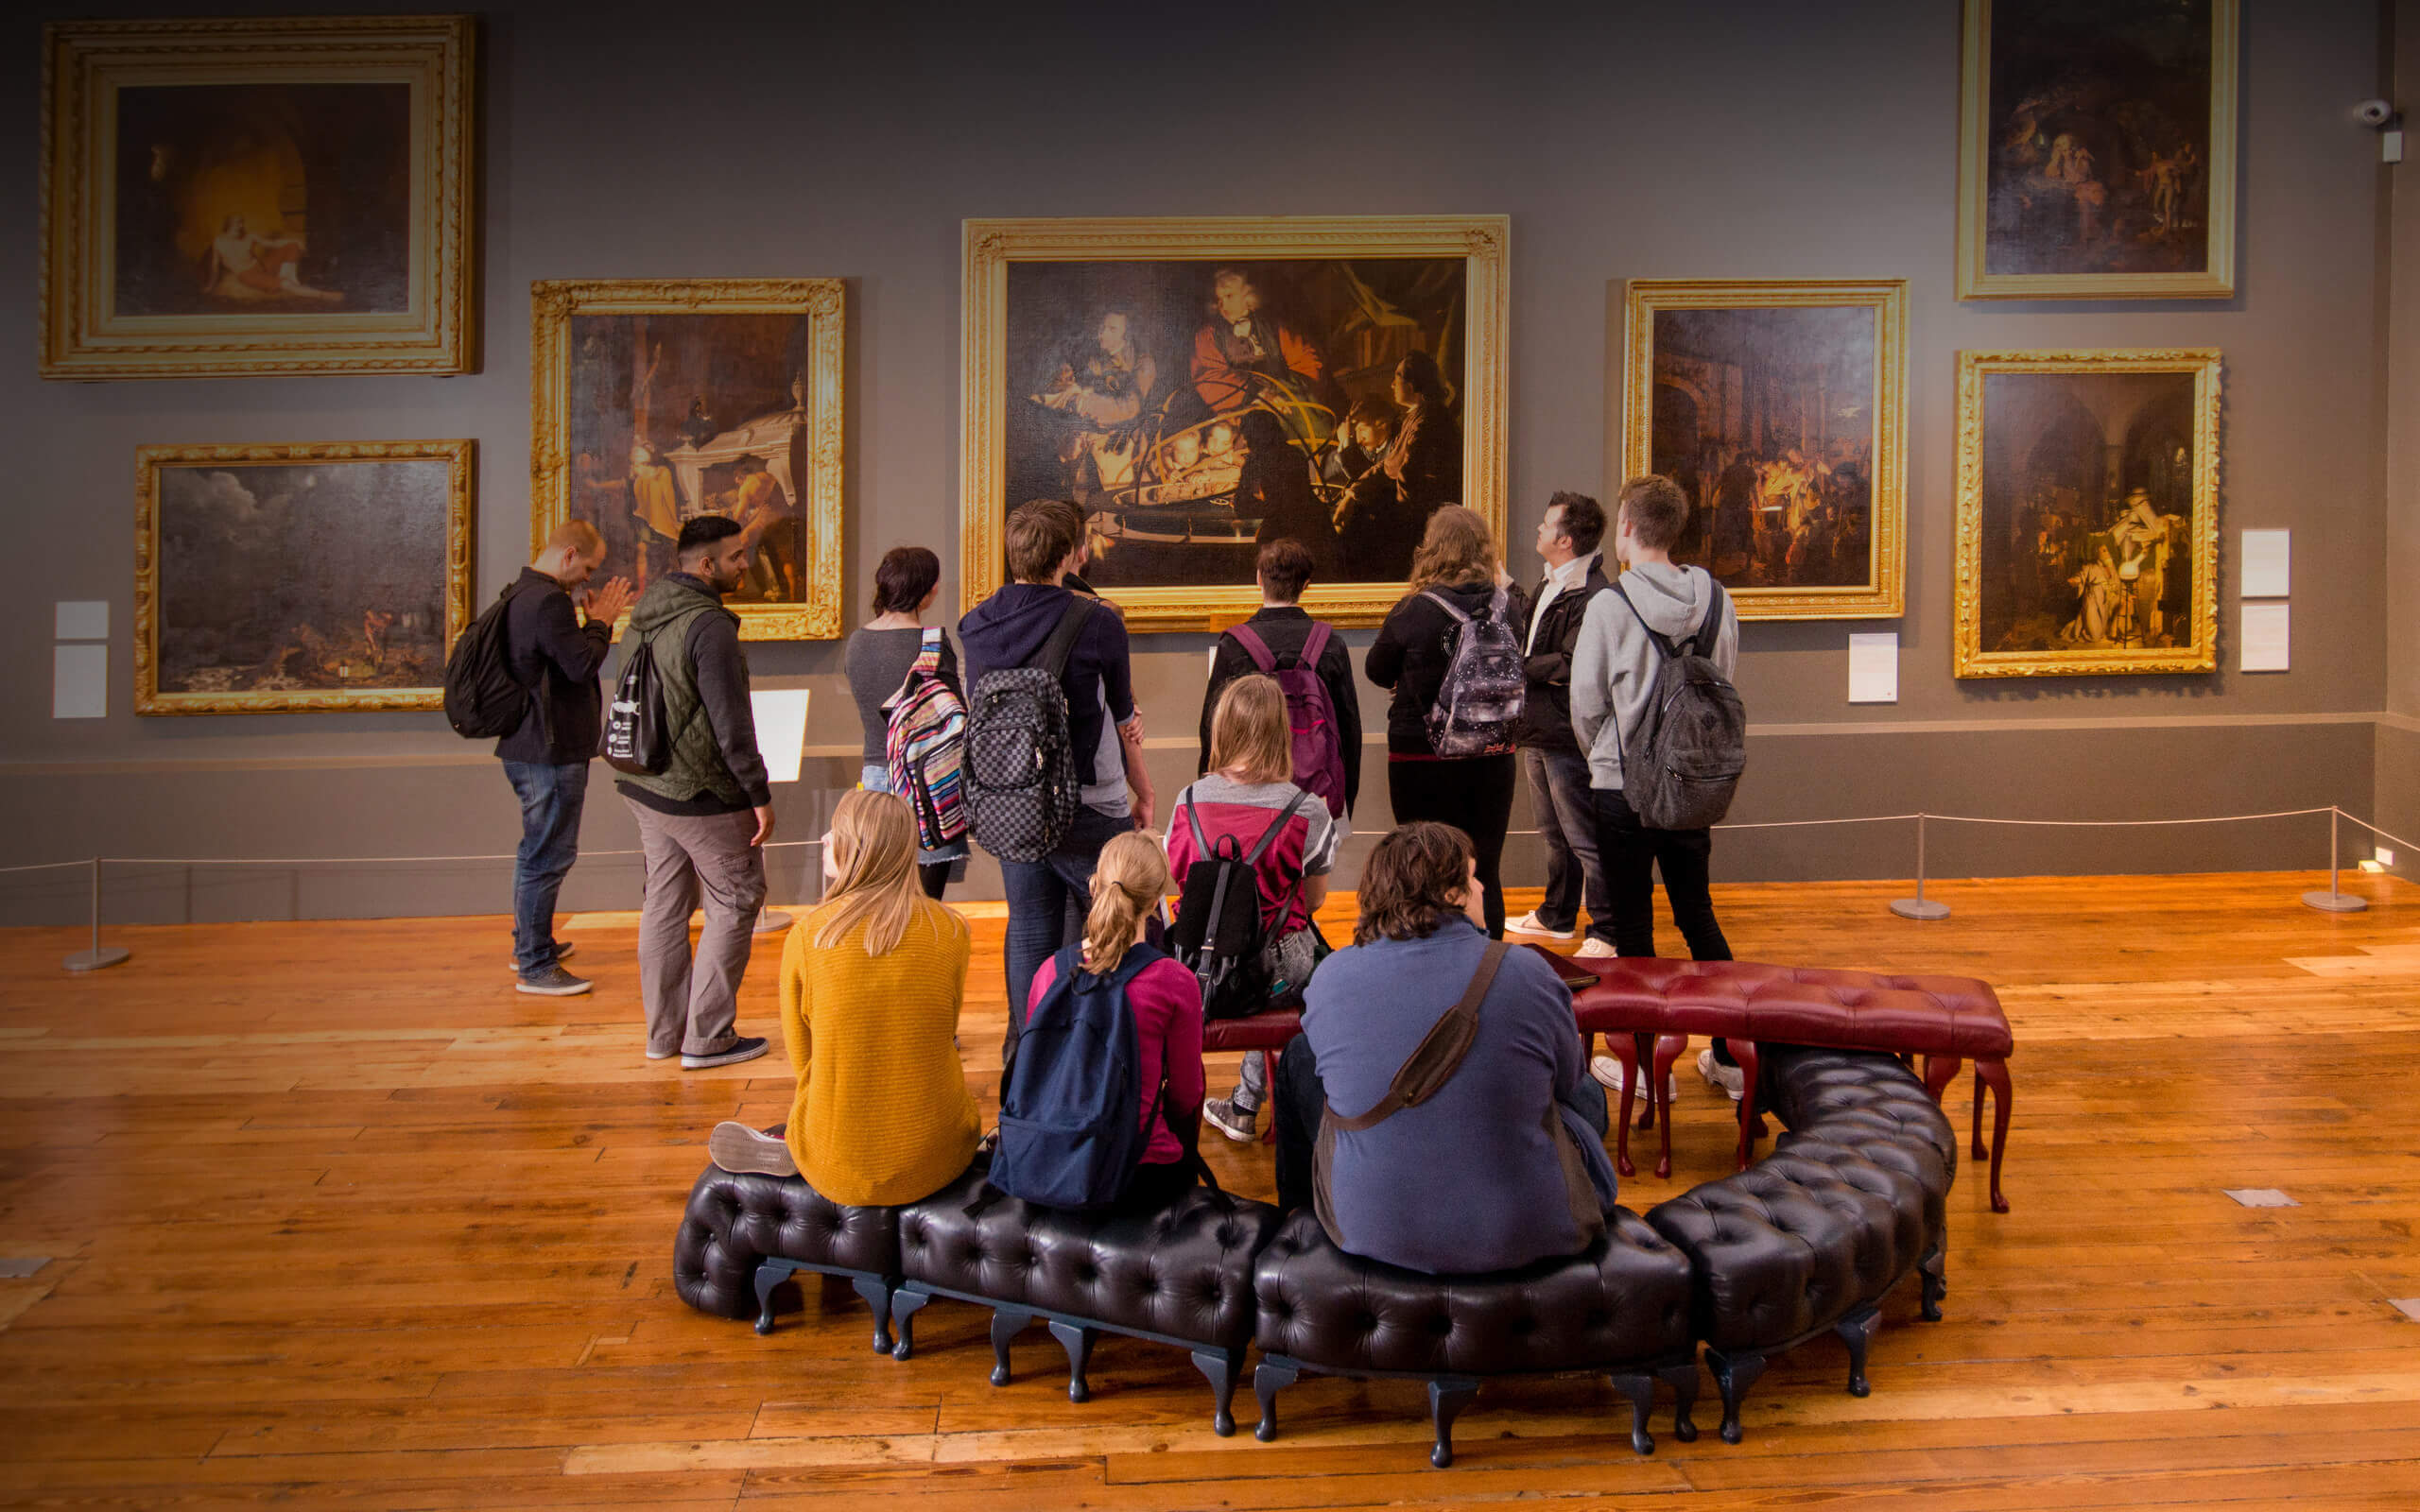 Visitors to Derby Museum and Gallery look at Joseph Wright's painting A Philosopher Lecturing on the Orrery